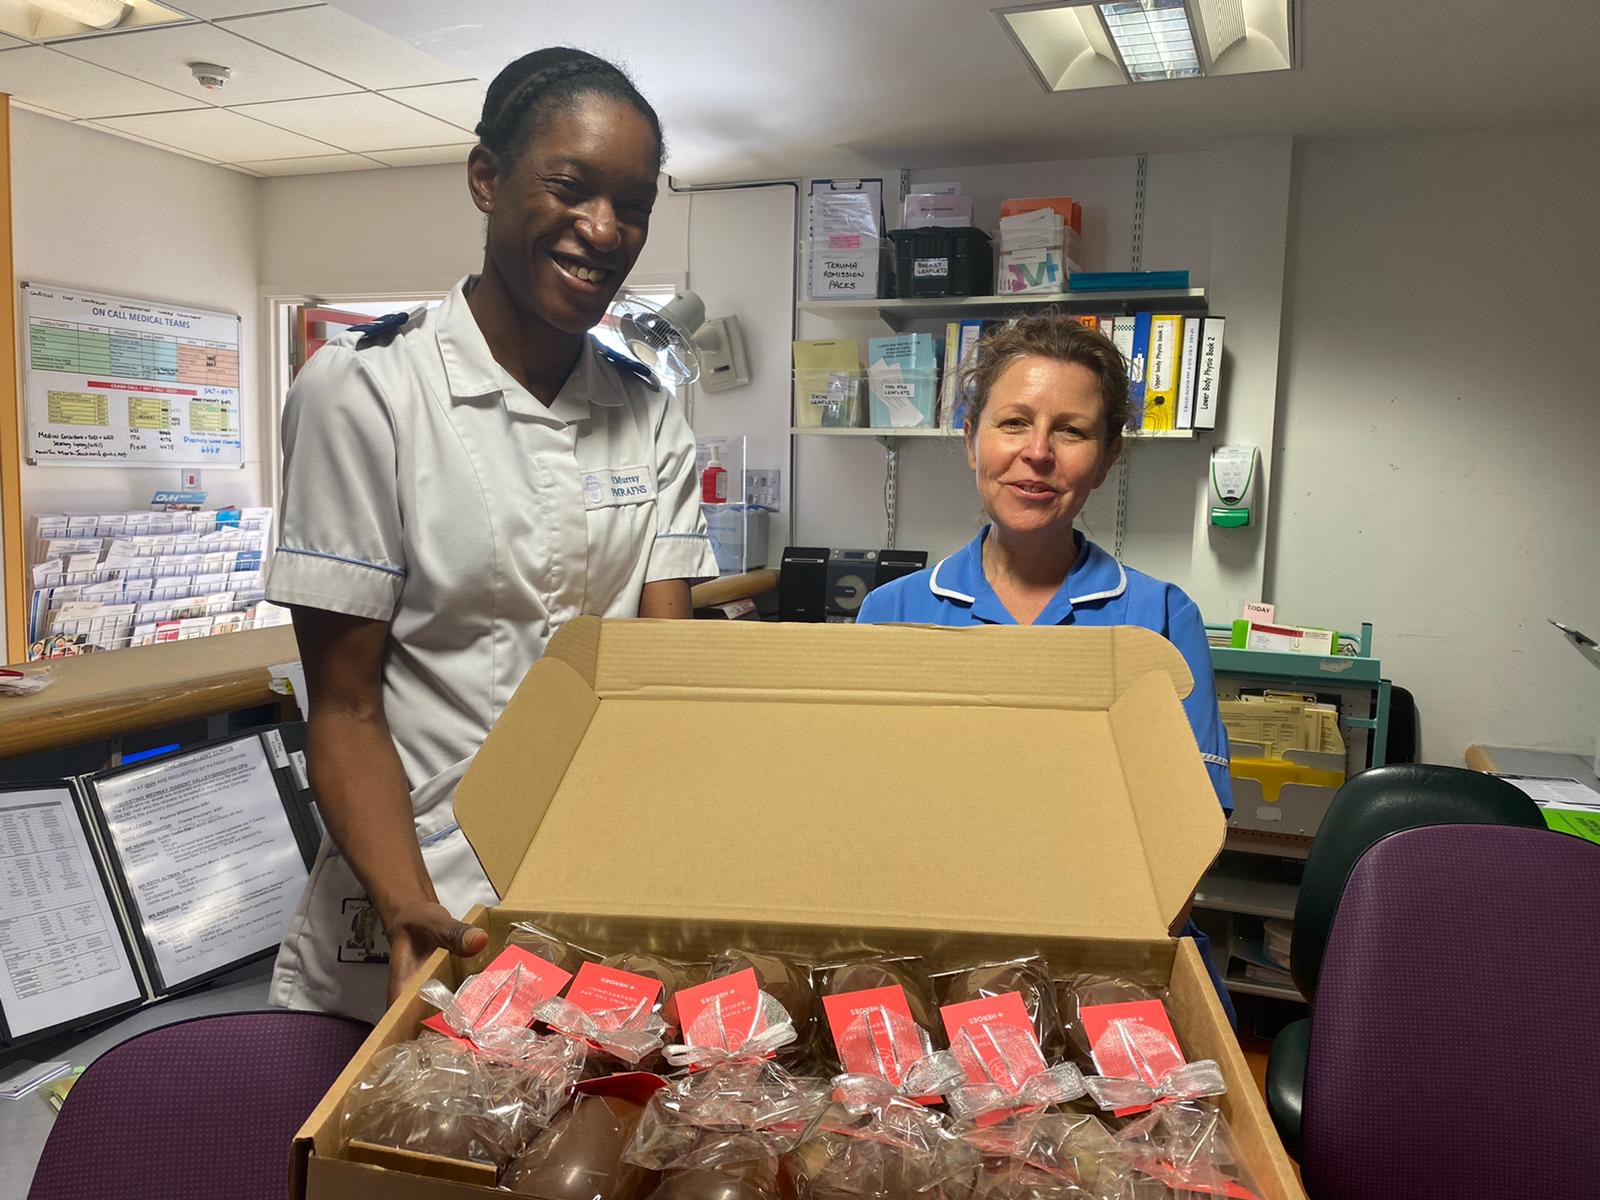 Easter Eggs Delivered To Hospitals As Thanks To Healthcare Workers Shropshire Star